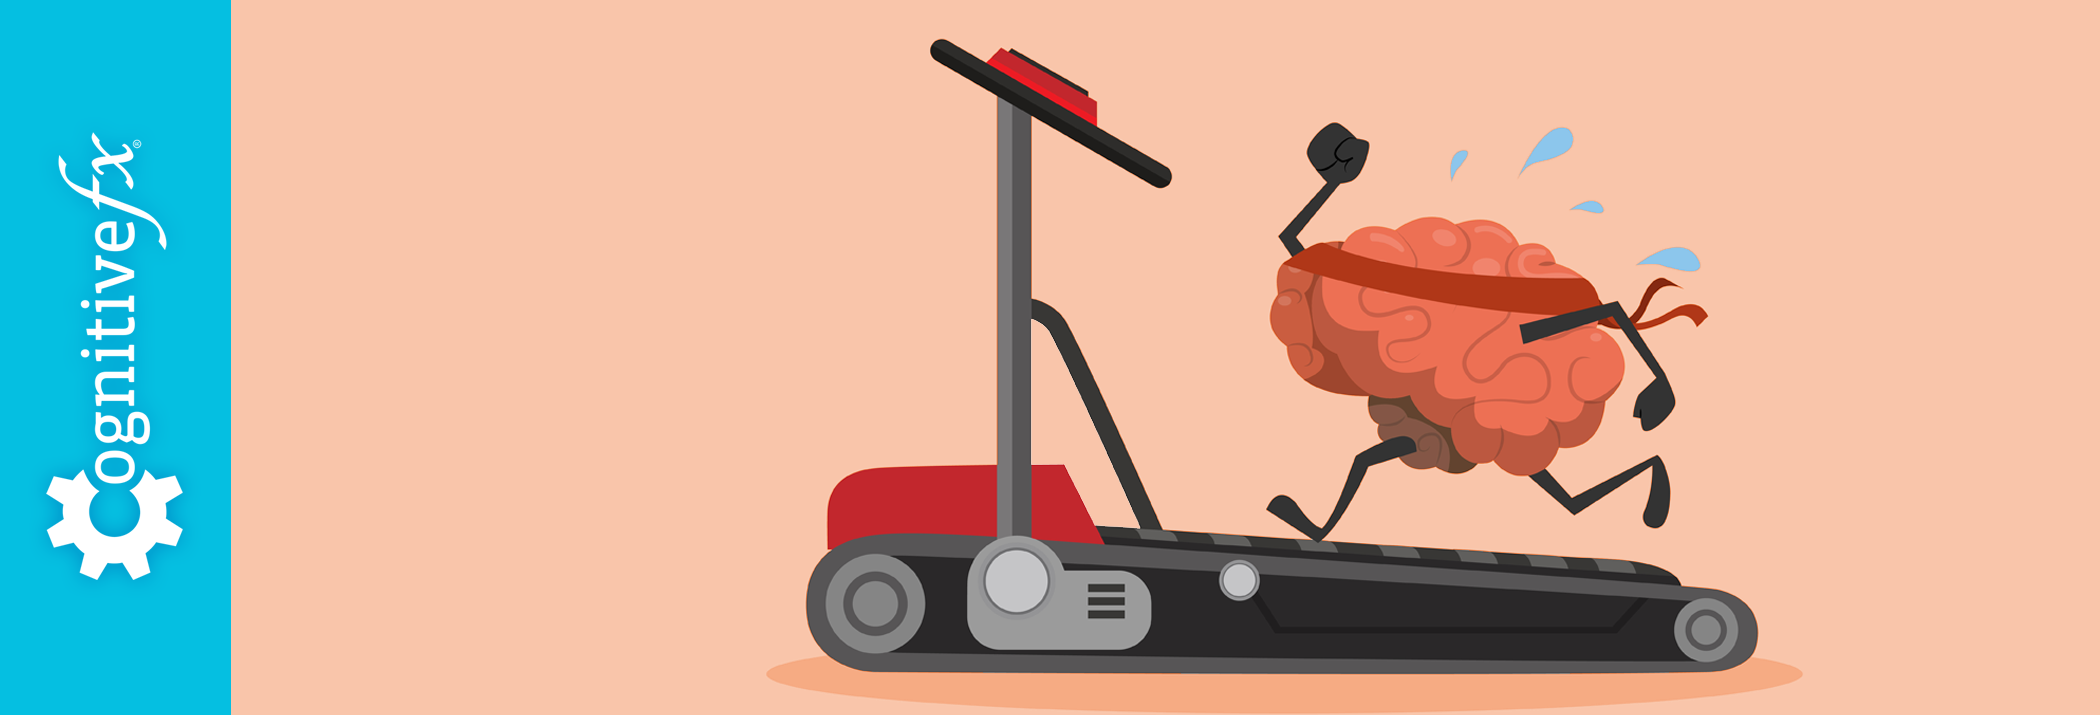 8 Tips to Help Exercise the Brain this Spring